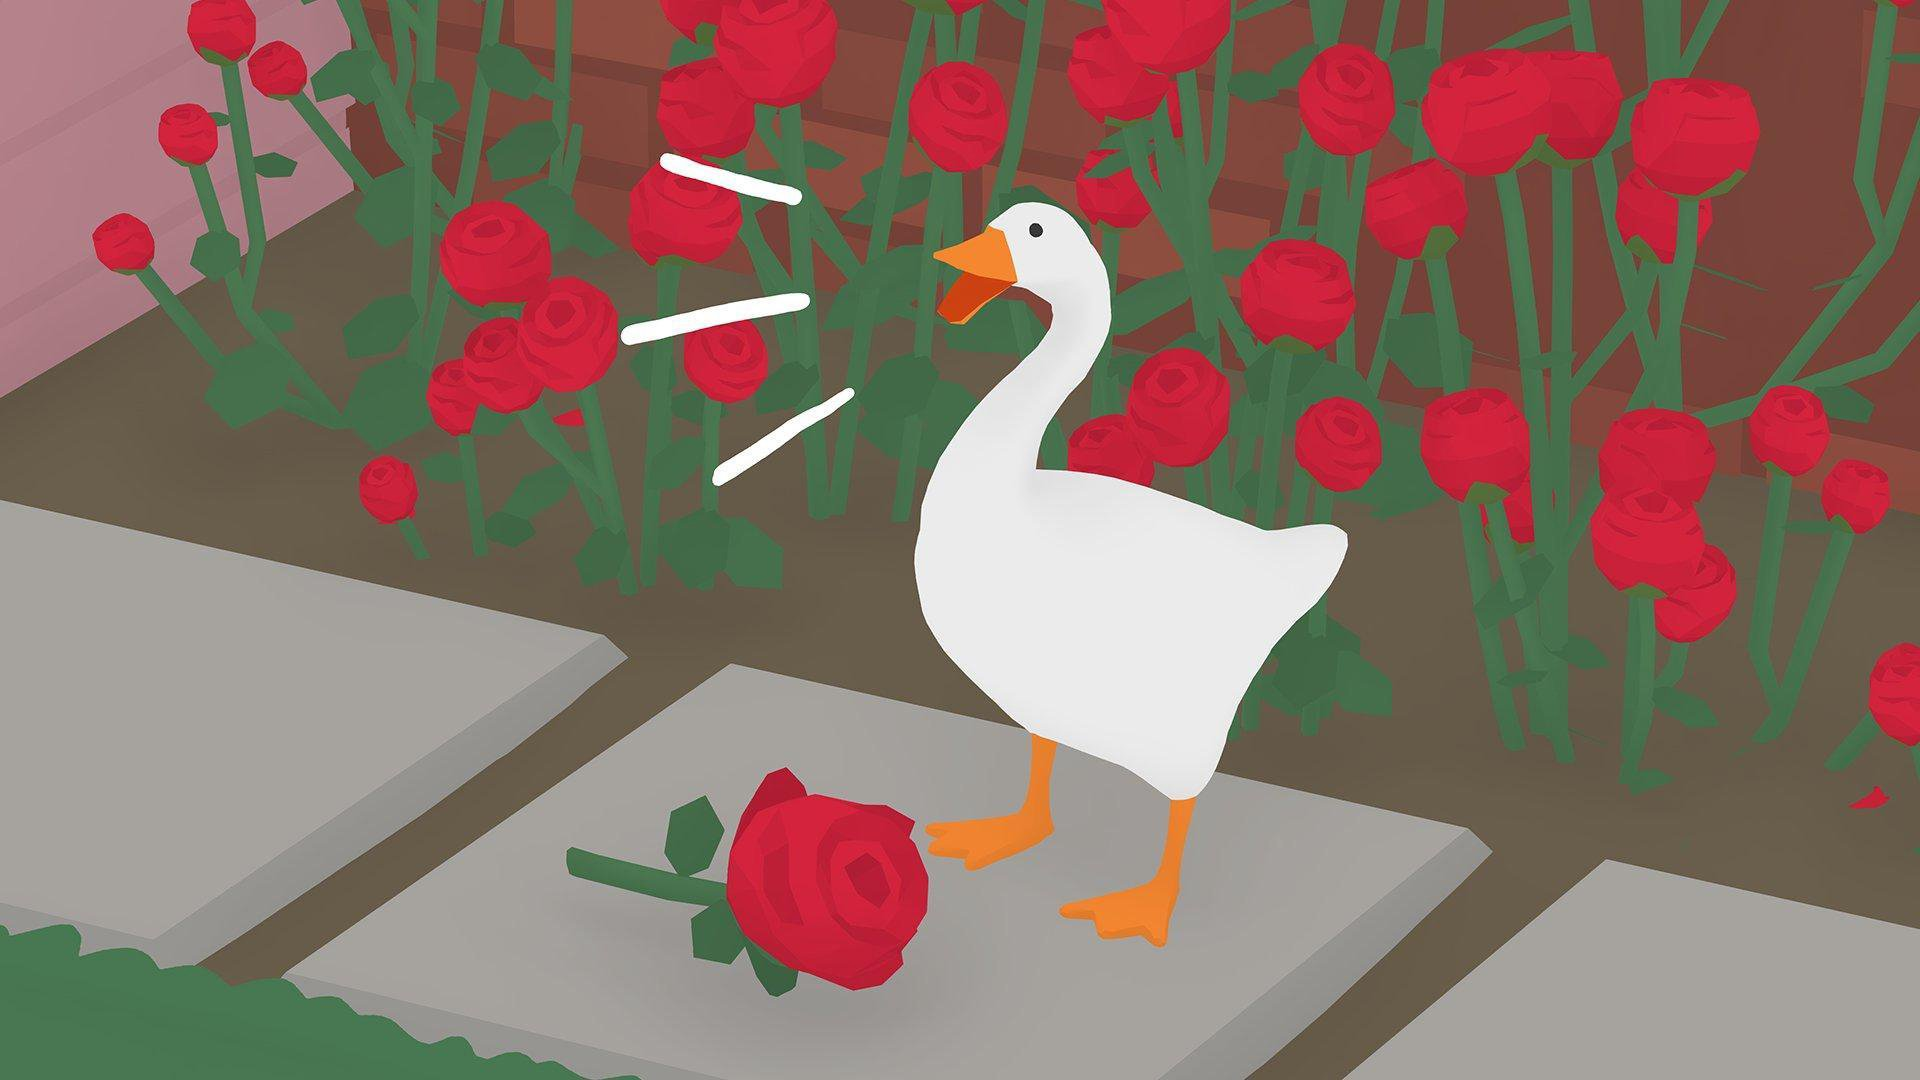 Untitled Goose Game steals itself the top prize at the D.I.C.E. Awards screenshot